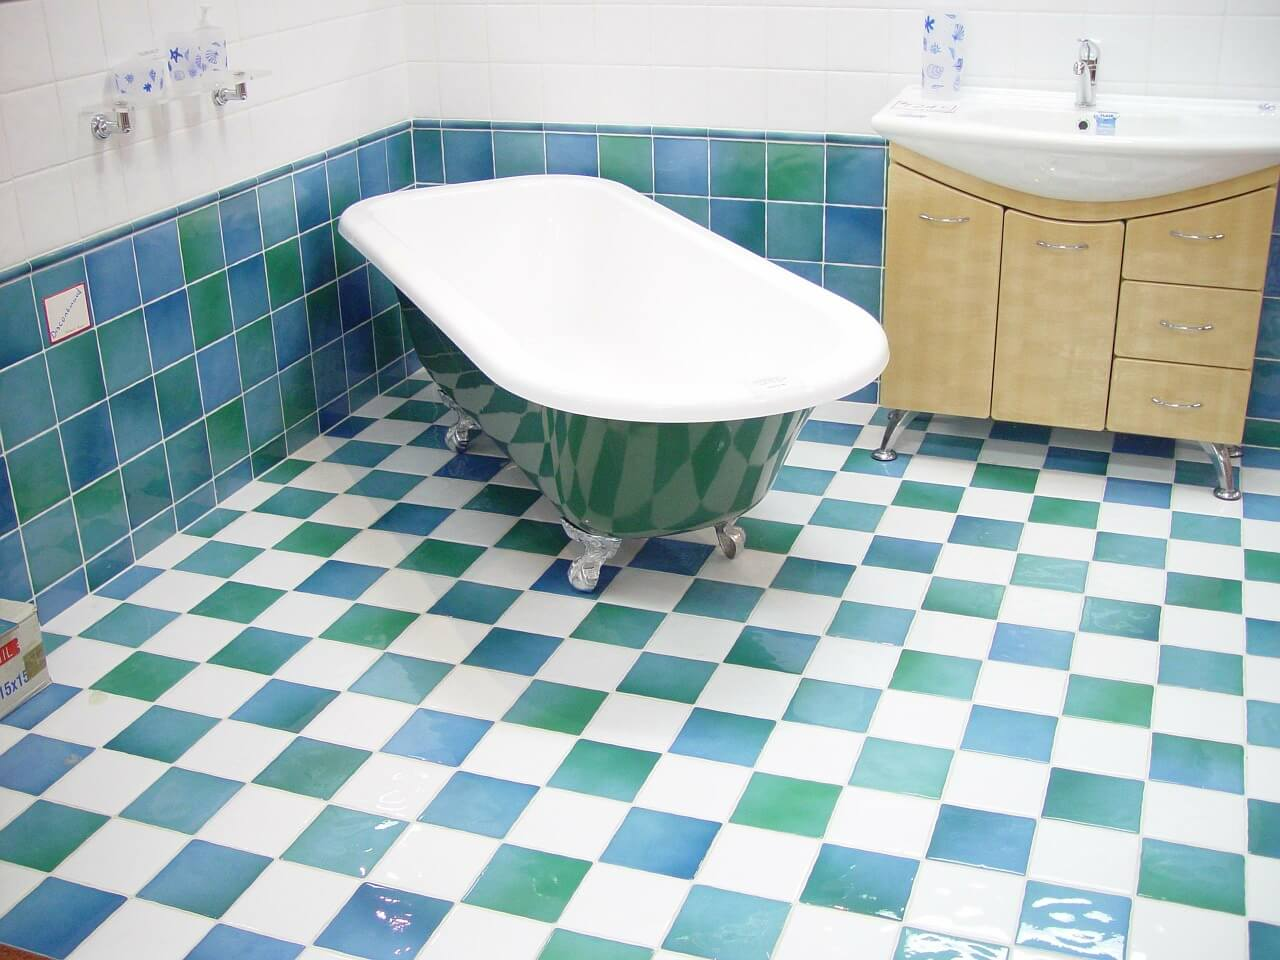 Practical Tips on Cleaning Bathroom Tiles